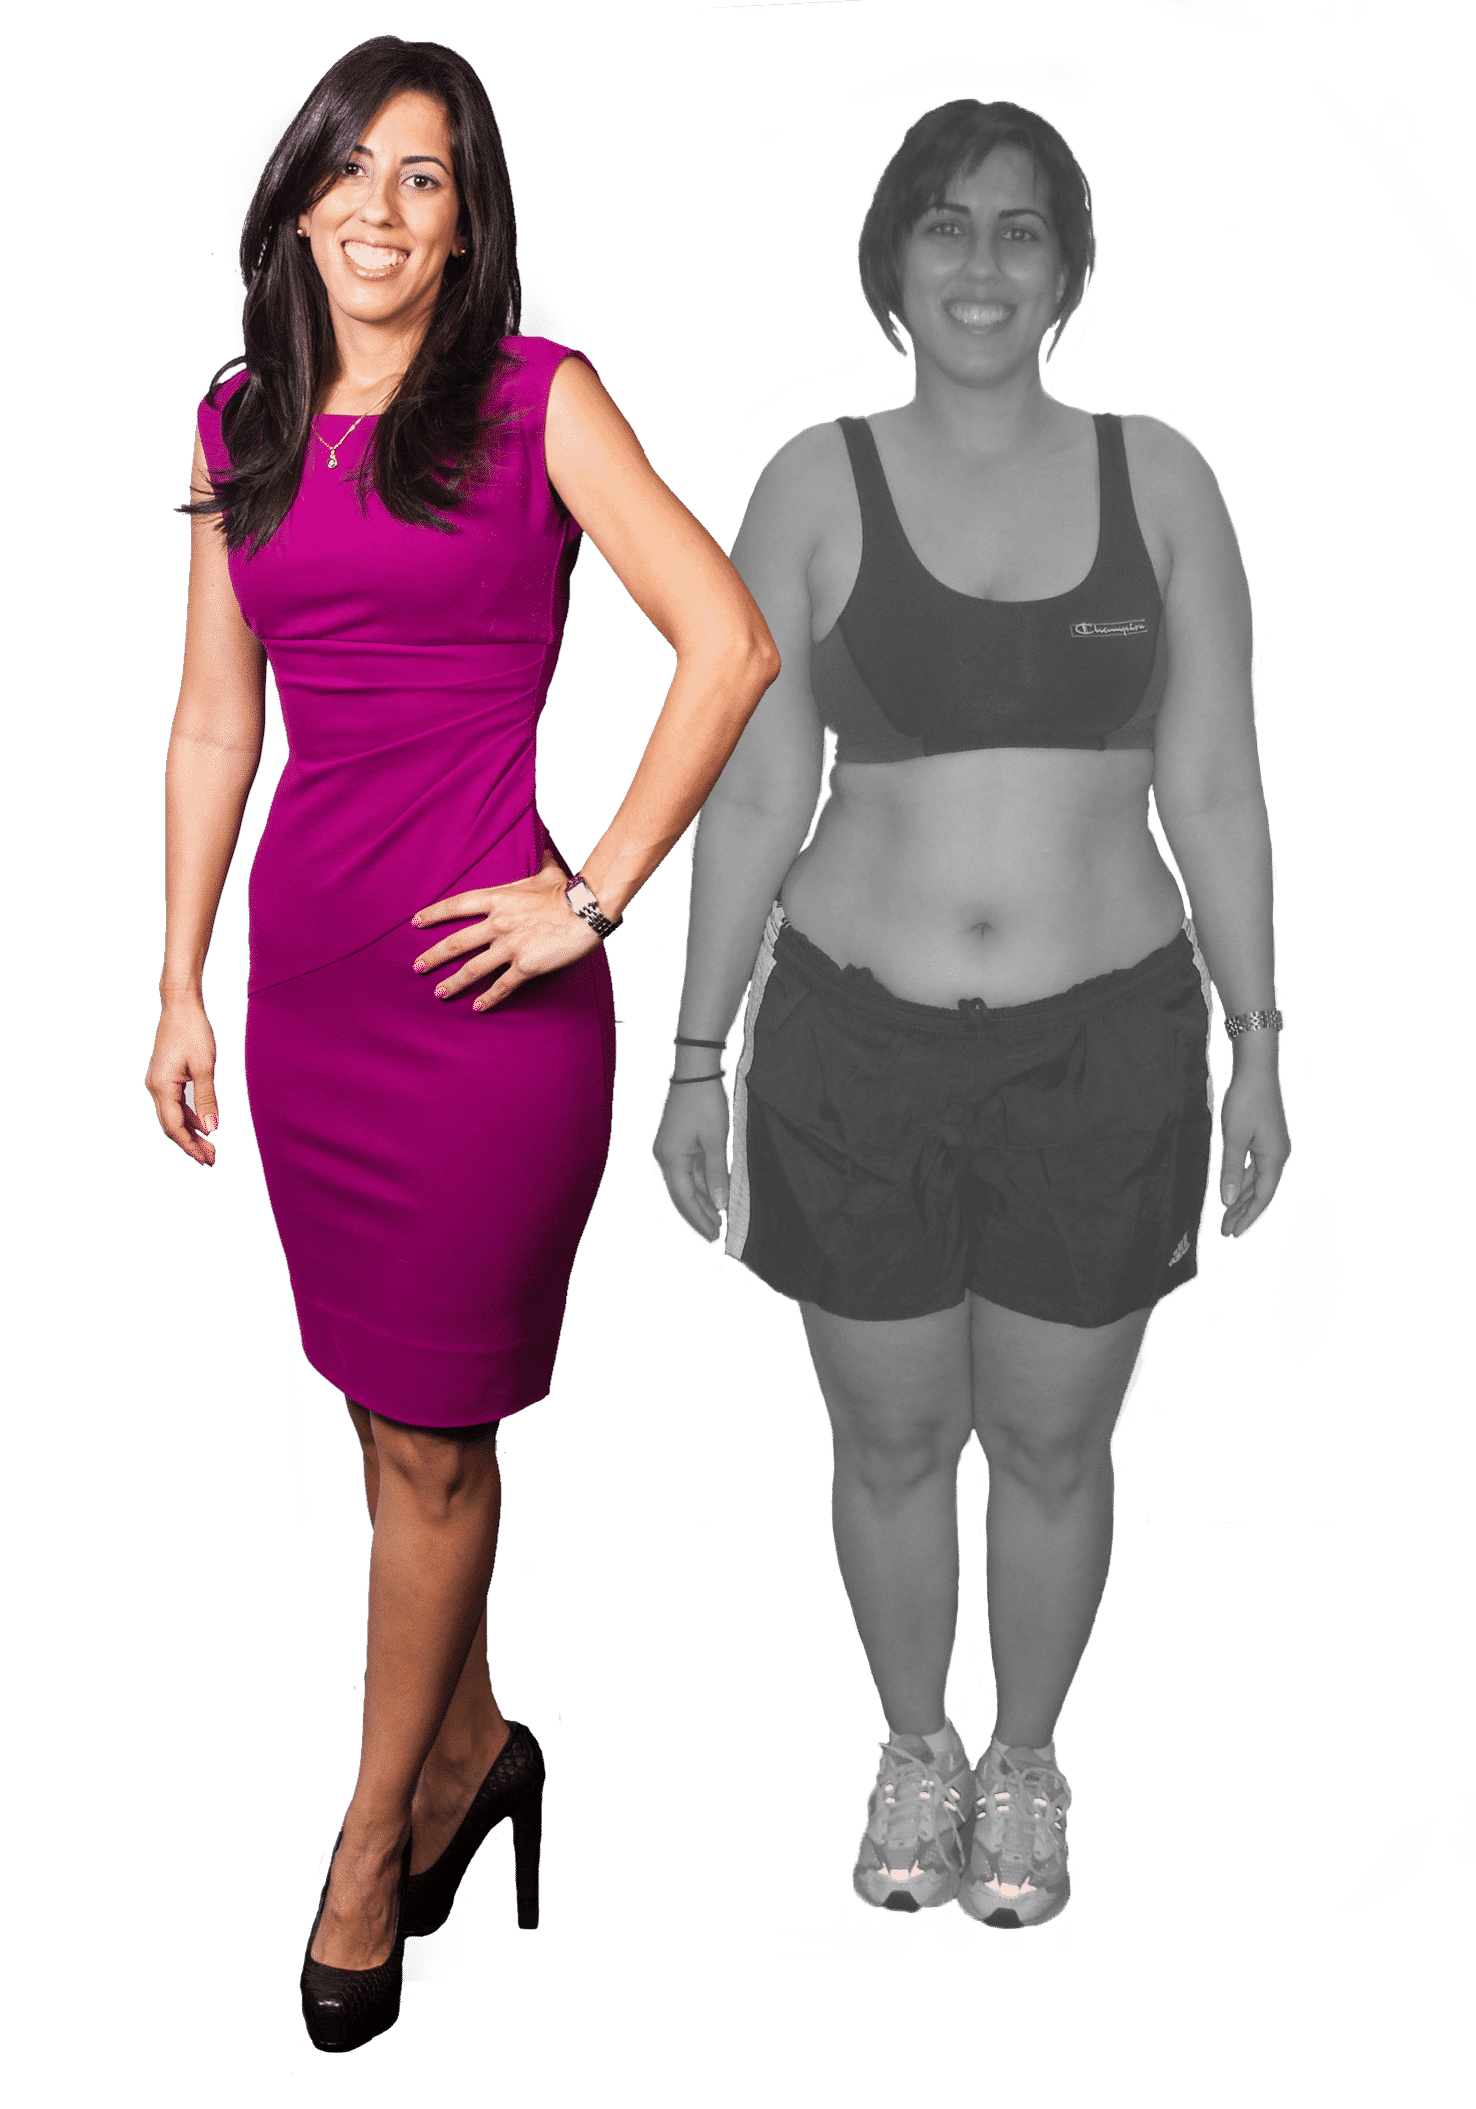 professional personal trainers for women in miami